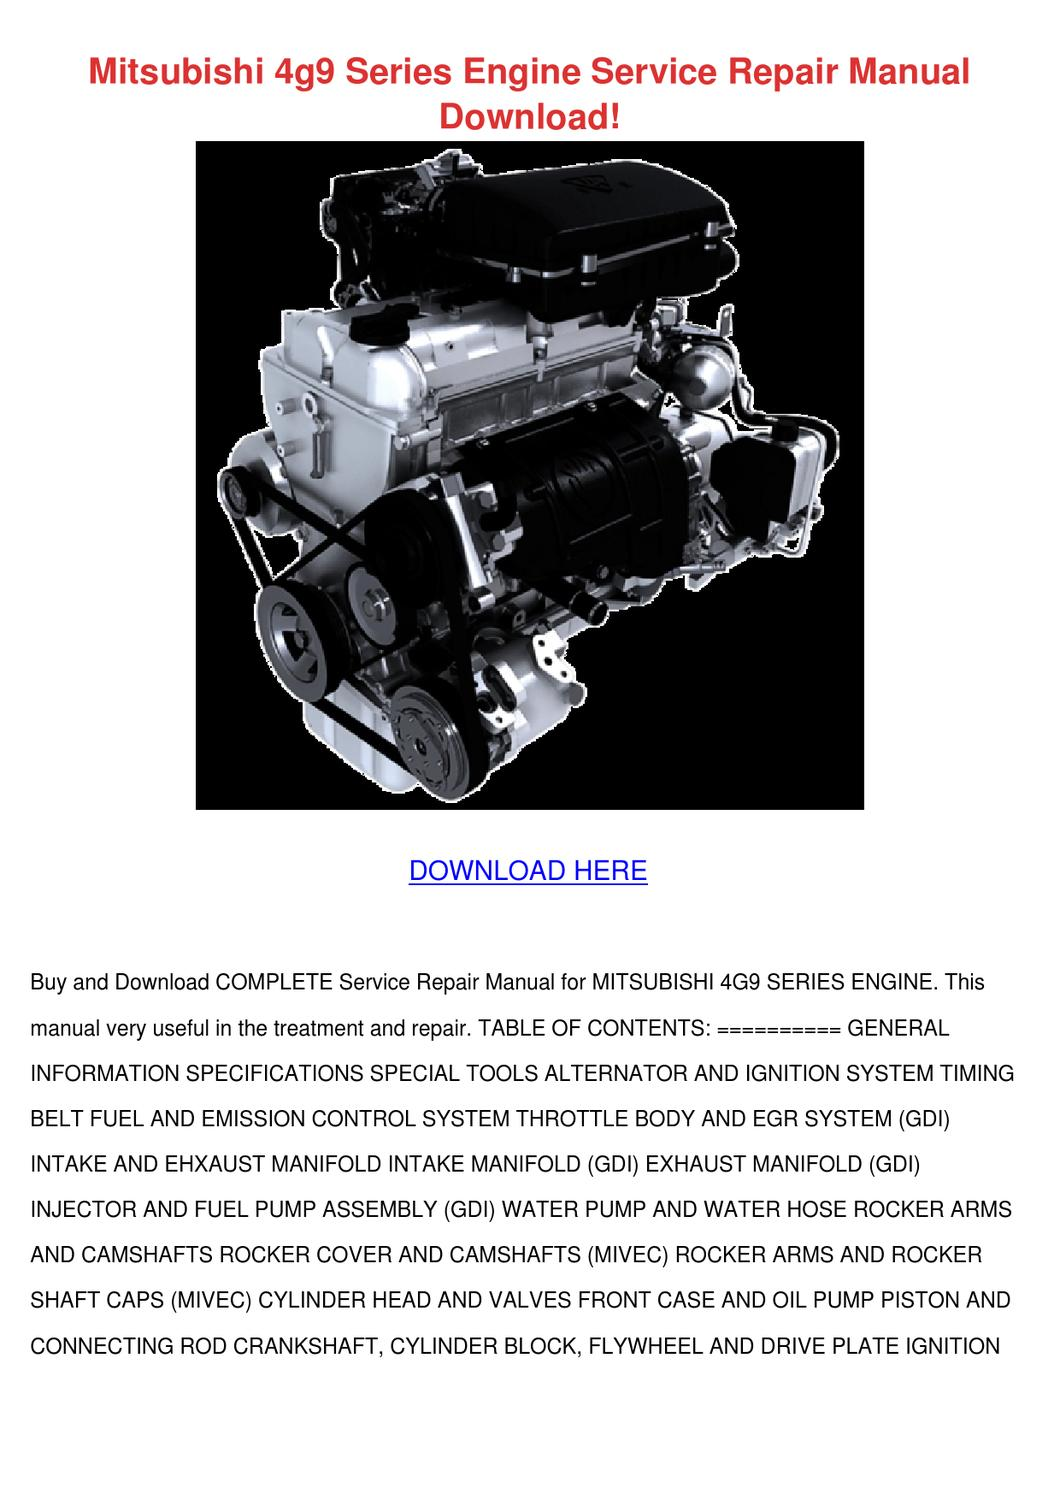 Mitsubishi 4g9 Series Engine Service Repair M By Raven Ideue Issuu L200 Ignition Wiring Diagram